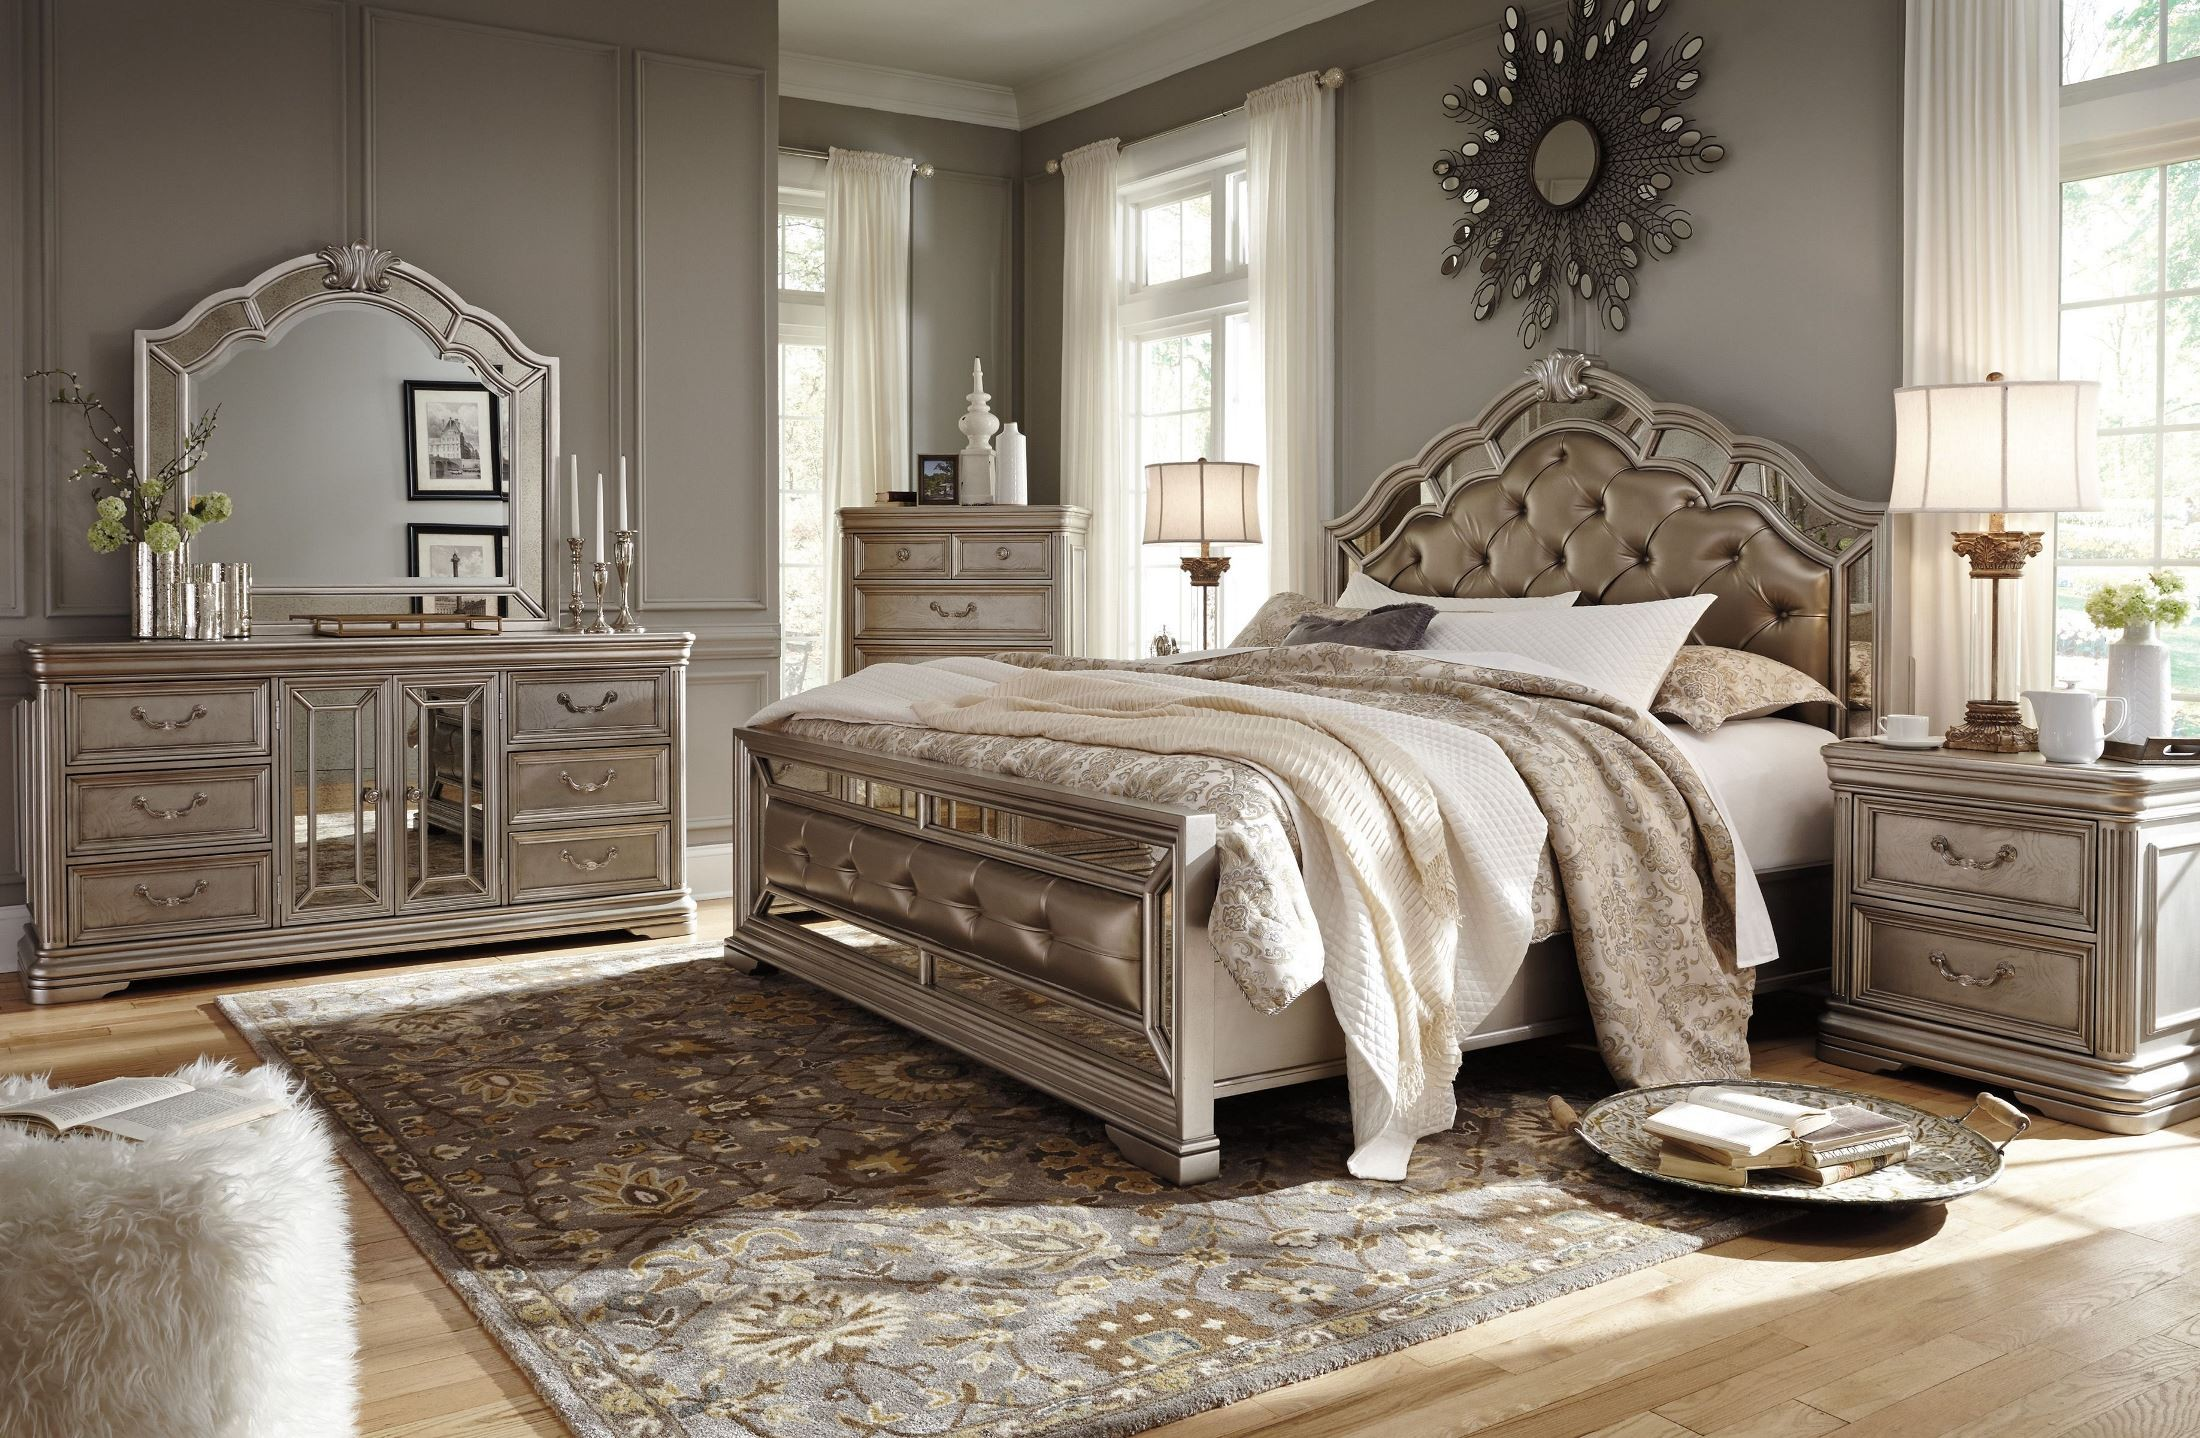 Two Bedroom Set Birlanny Silver Upholstered Panel Bedroom Set B720 57 54